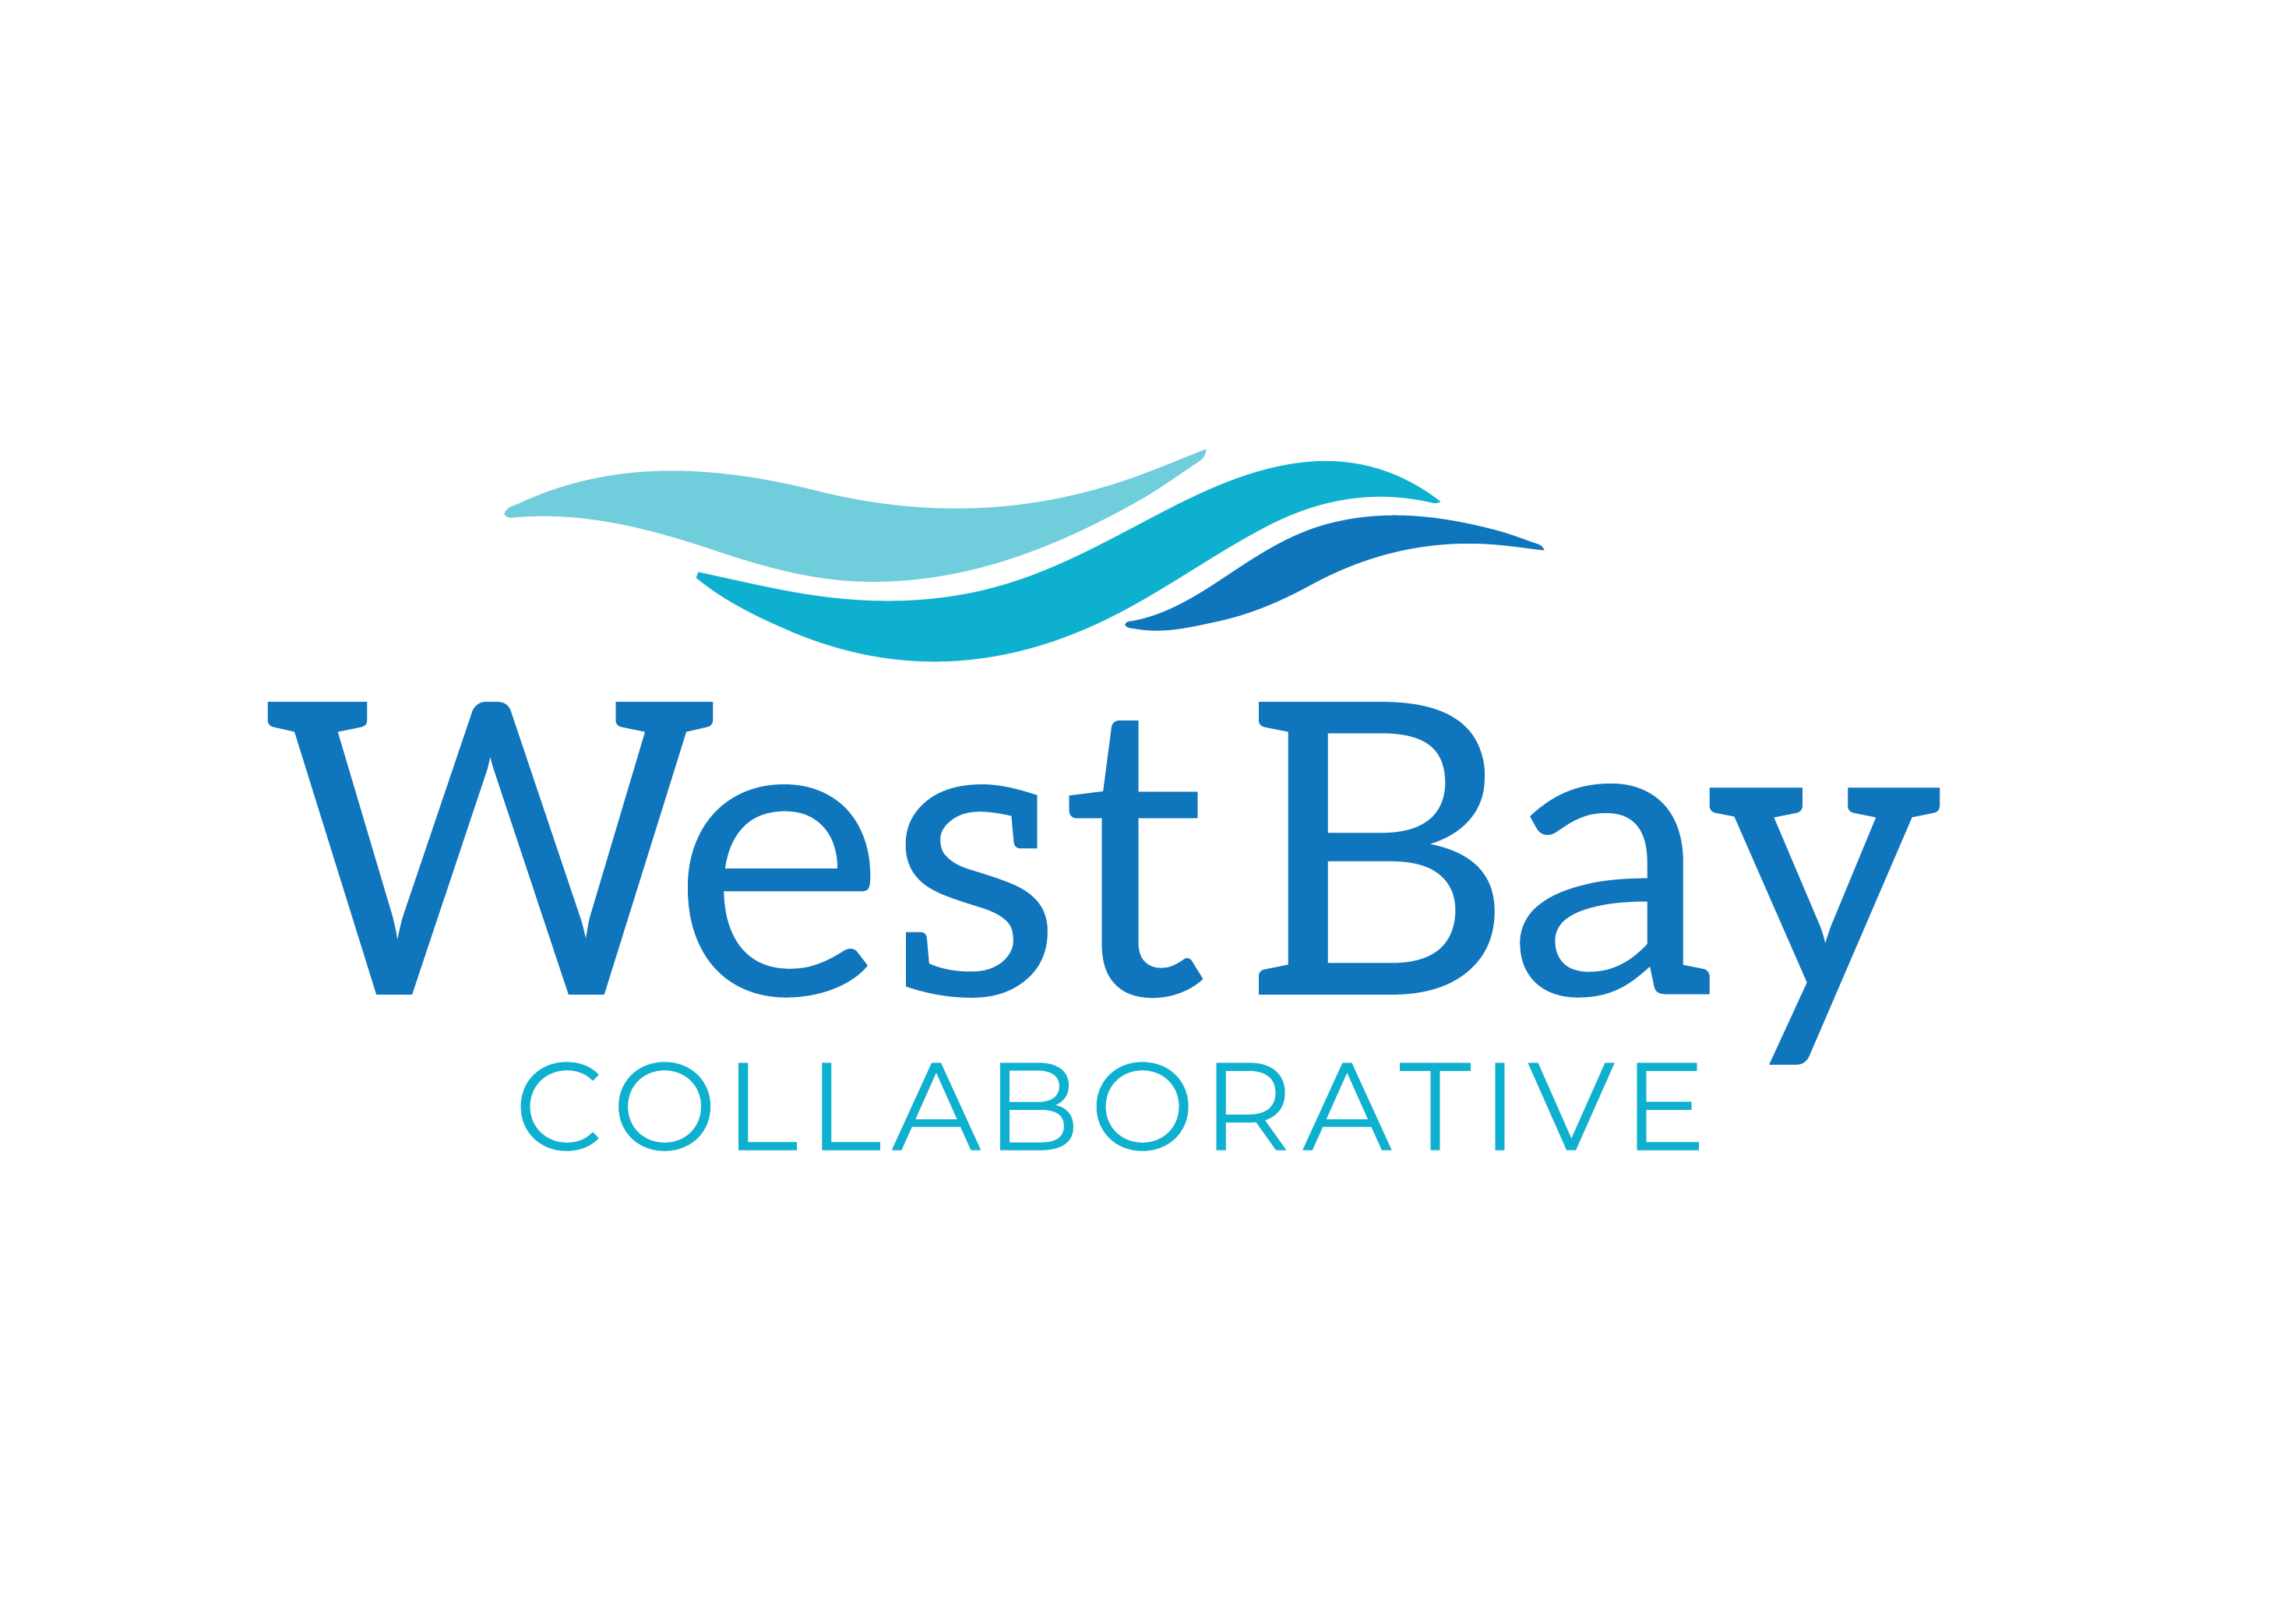 West Bay Collaborative